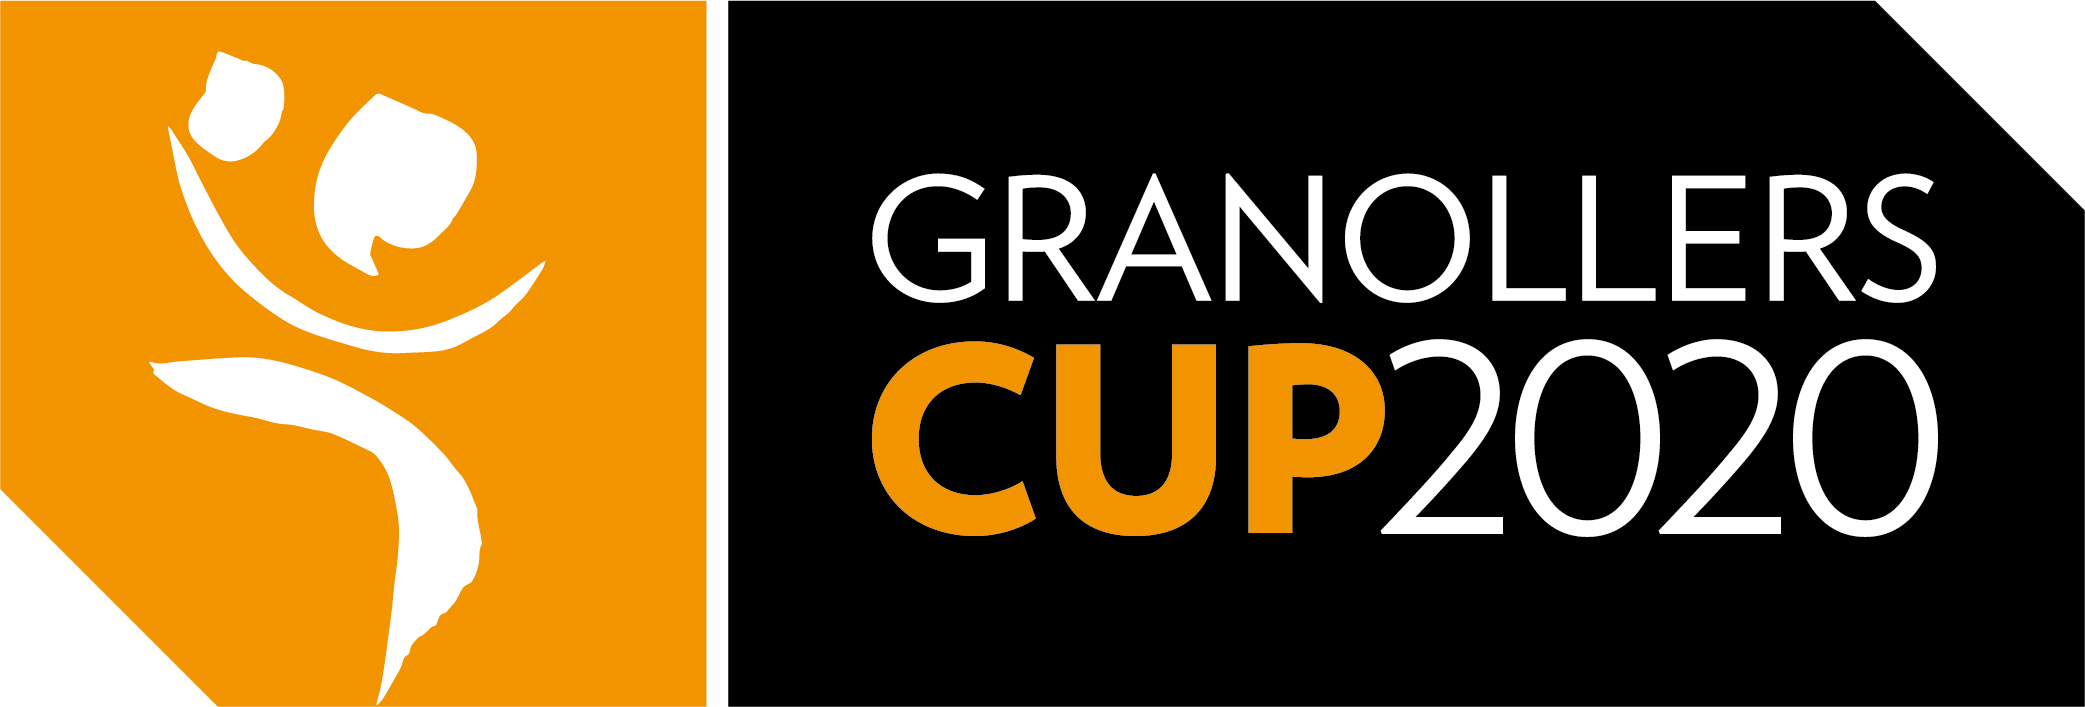 Granollers Cup - International Handball Tournament